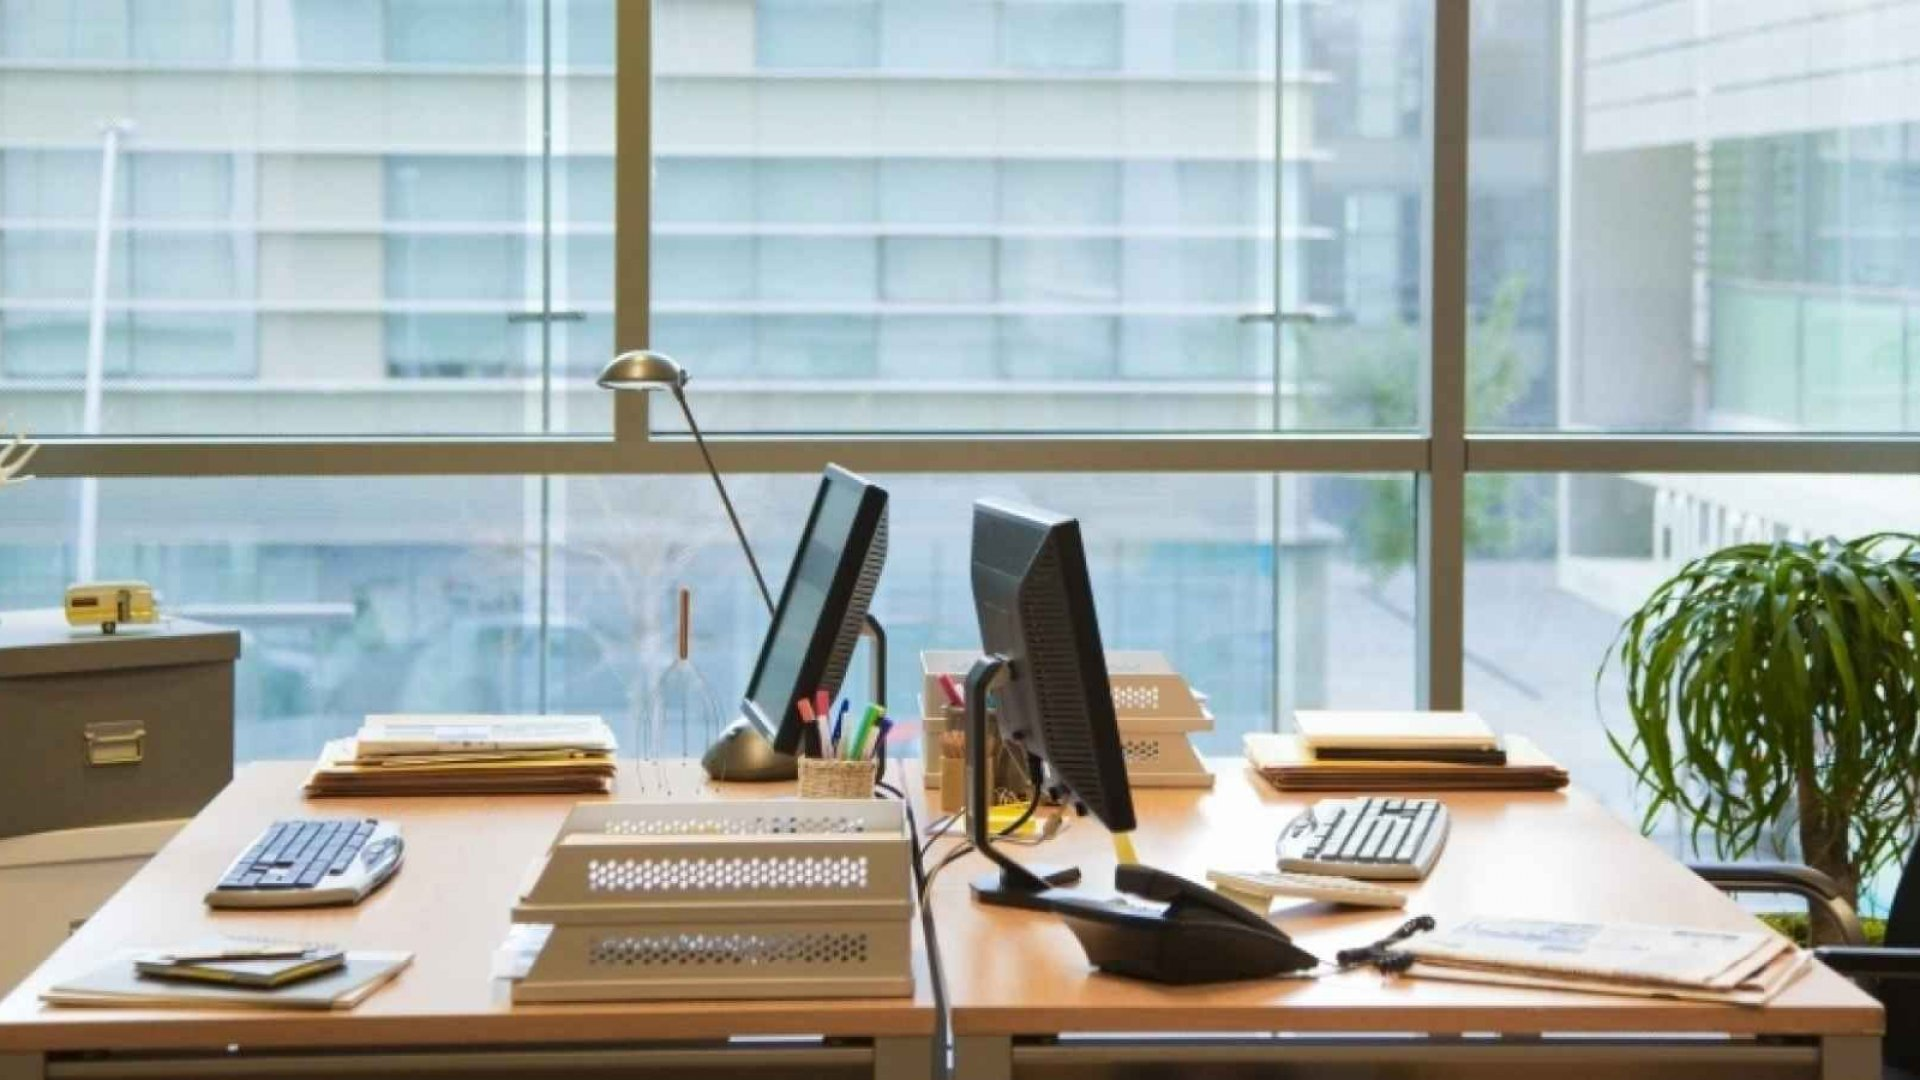 7 Simple Office Changes That Can Increase Mood and Productivity